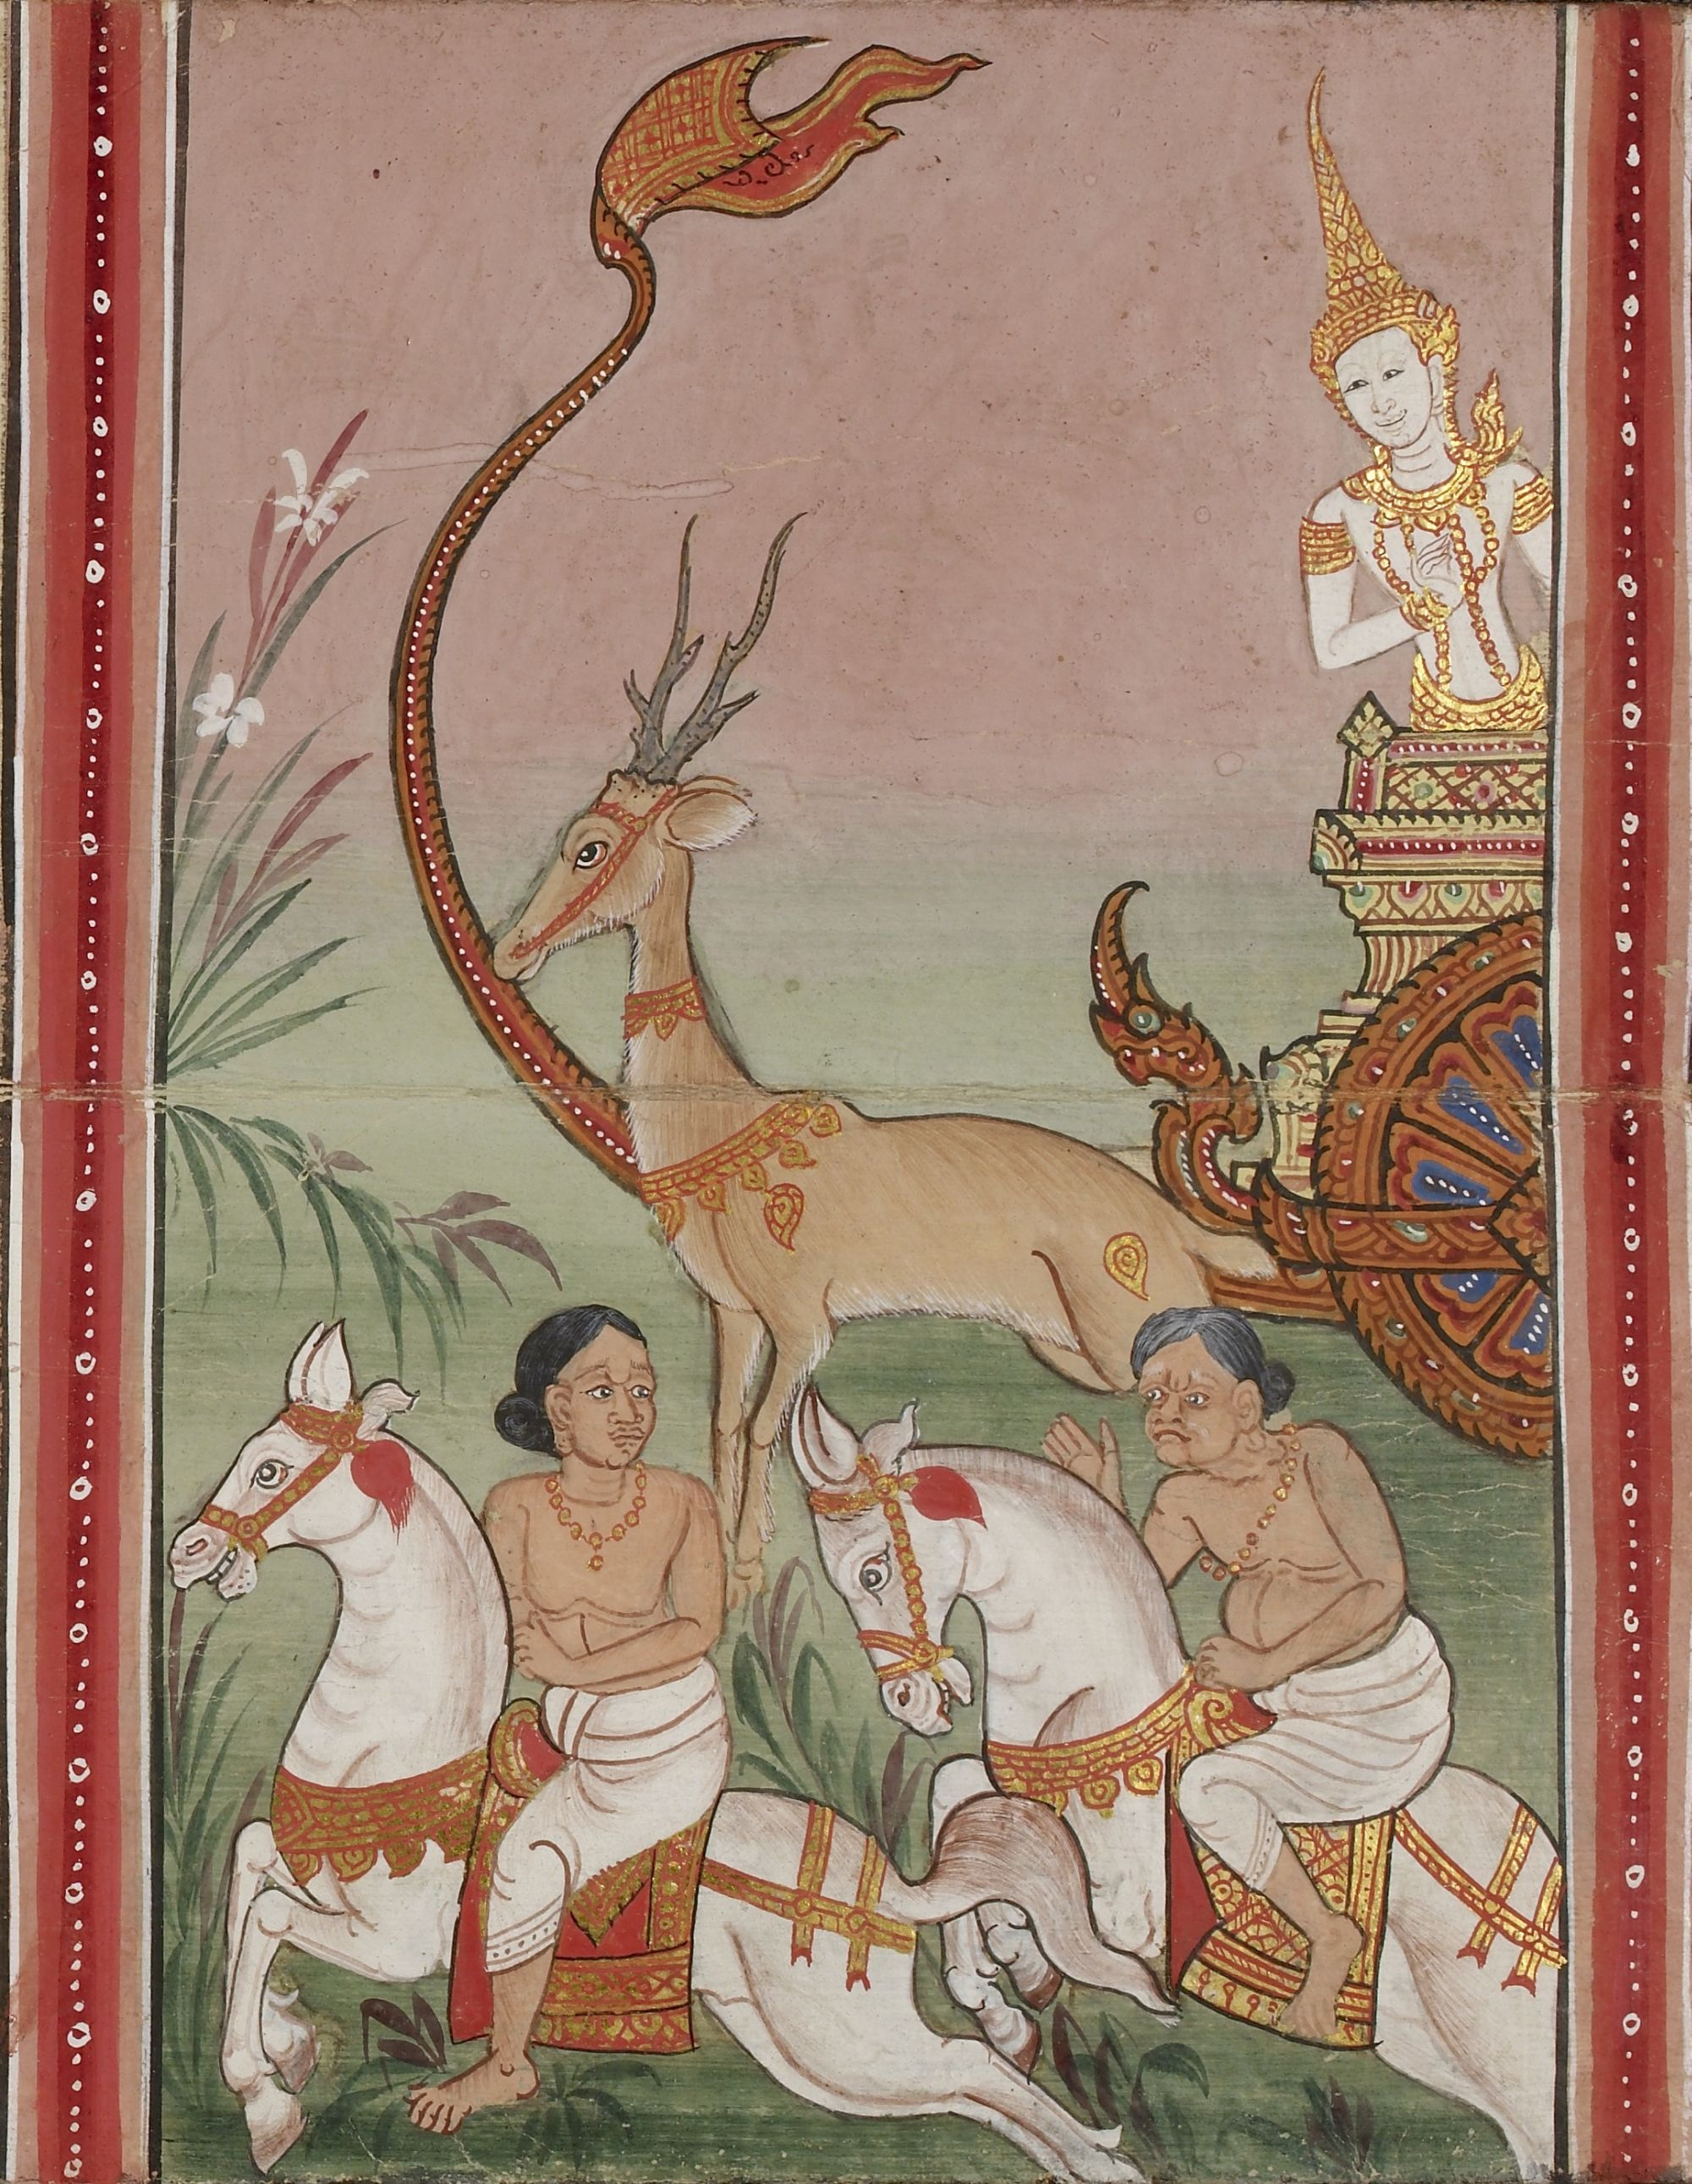 Buddhist texts with illustrations from the Ten Birth Tales (Thotsachāt)